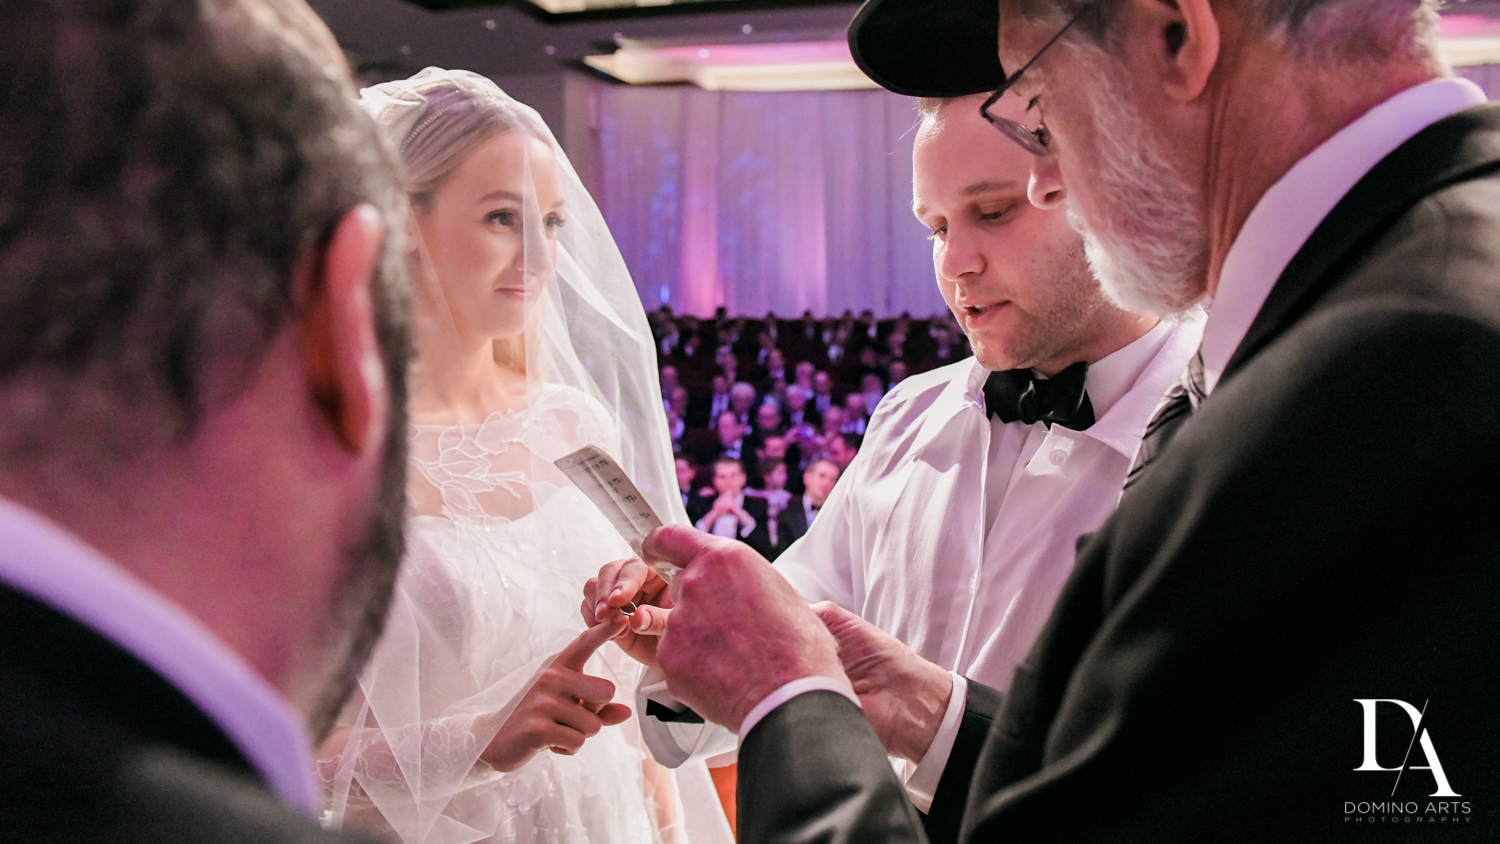 jewish ring exchange at Lavish Flowers & Crystals Wedding at Aventura Turnberry Jewish Center by Domino Arts Photography